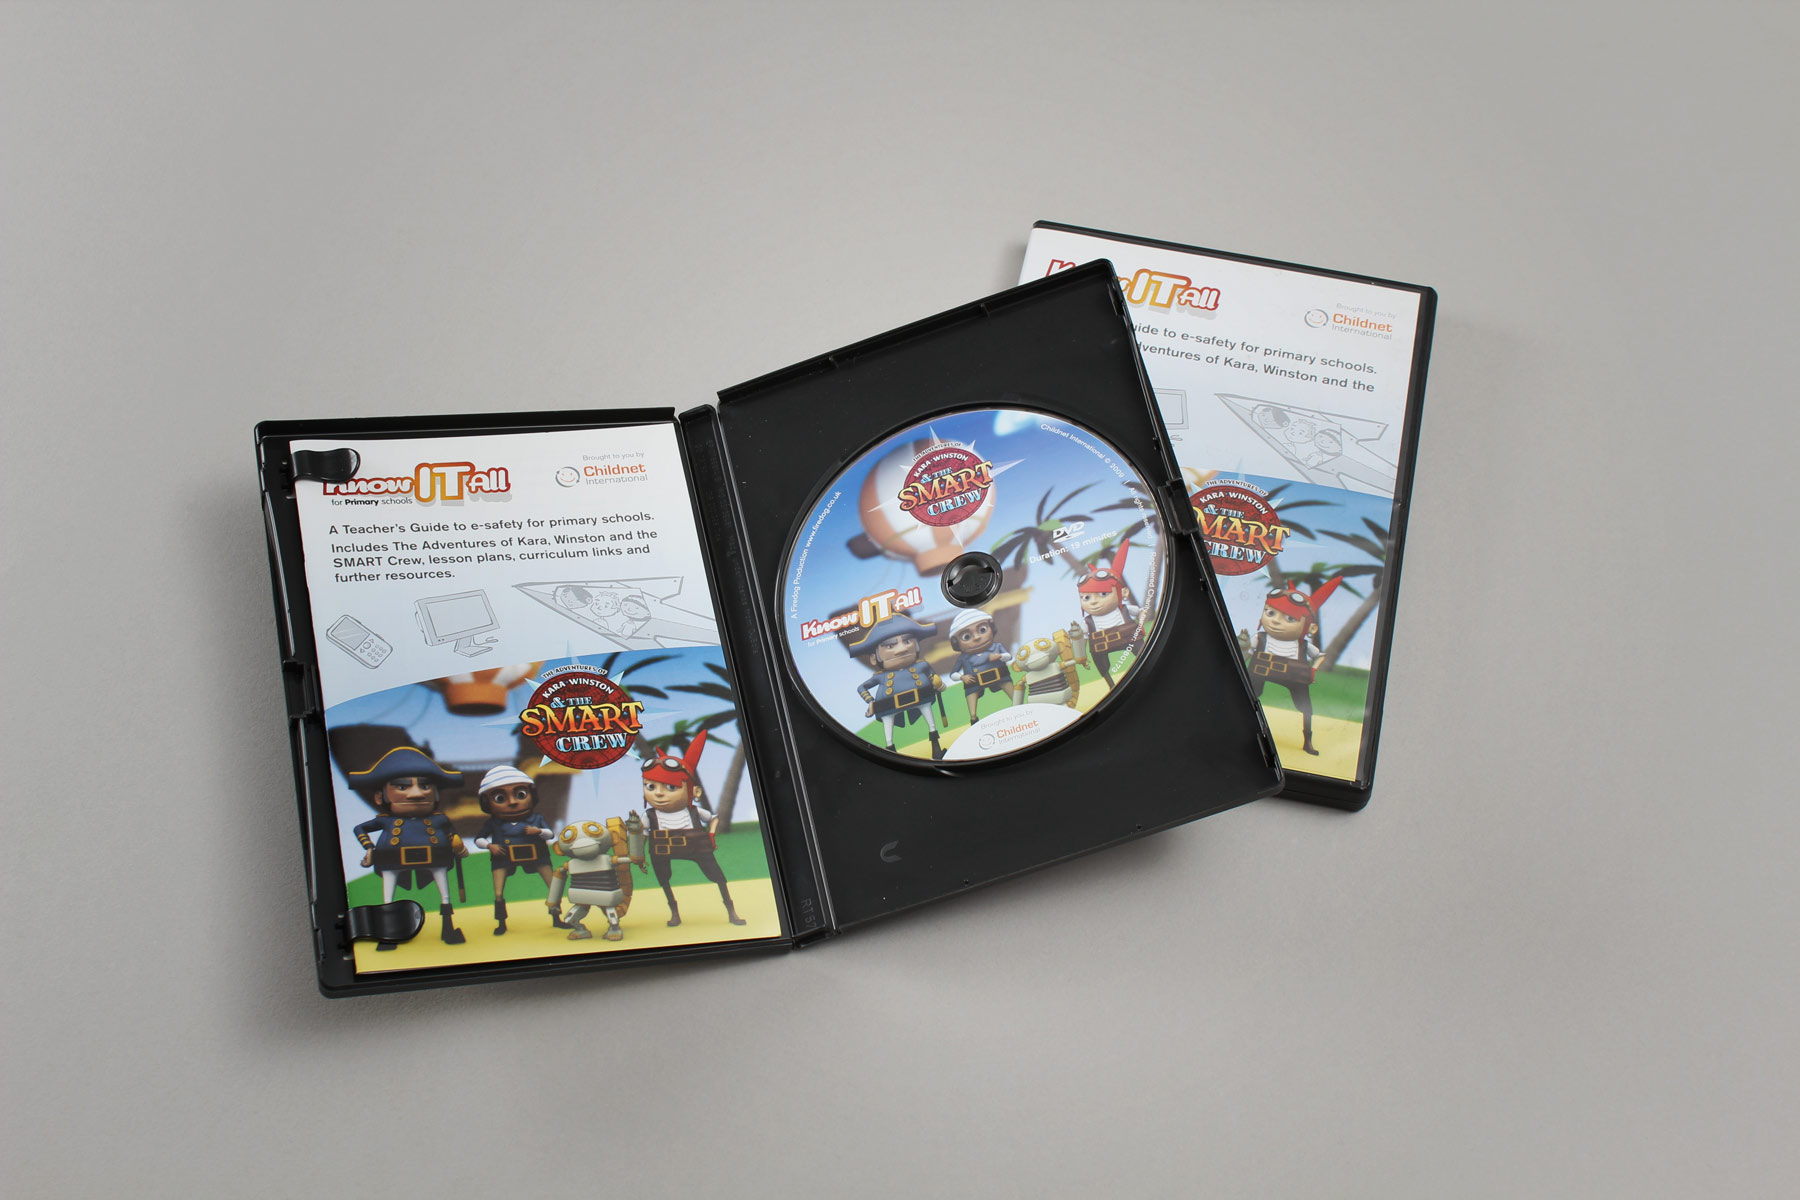 The DVD pack contains both the animations and also a handy teachers resource kit, showing how to use the animation in class. Keep an eye out for the Mexican edition, released only recently!